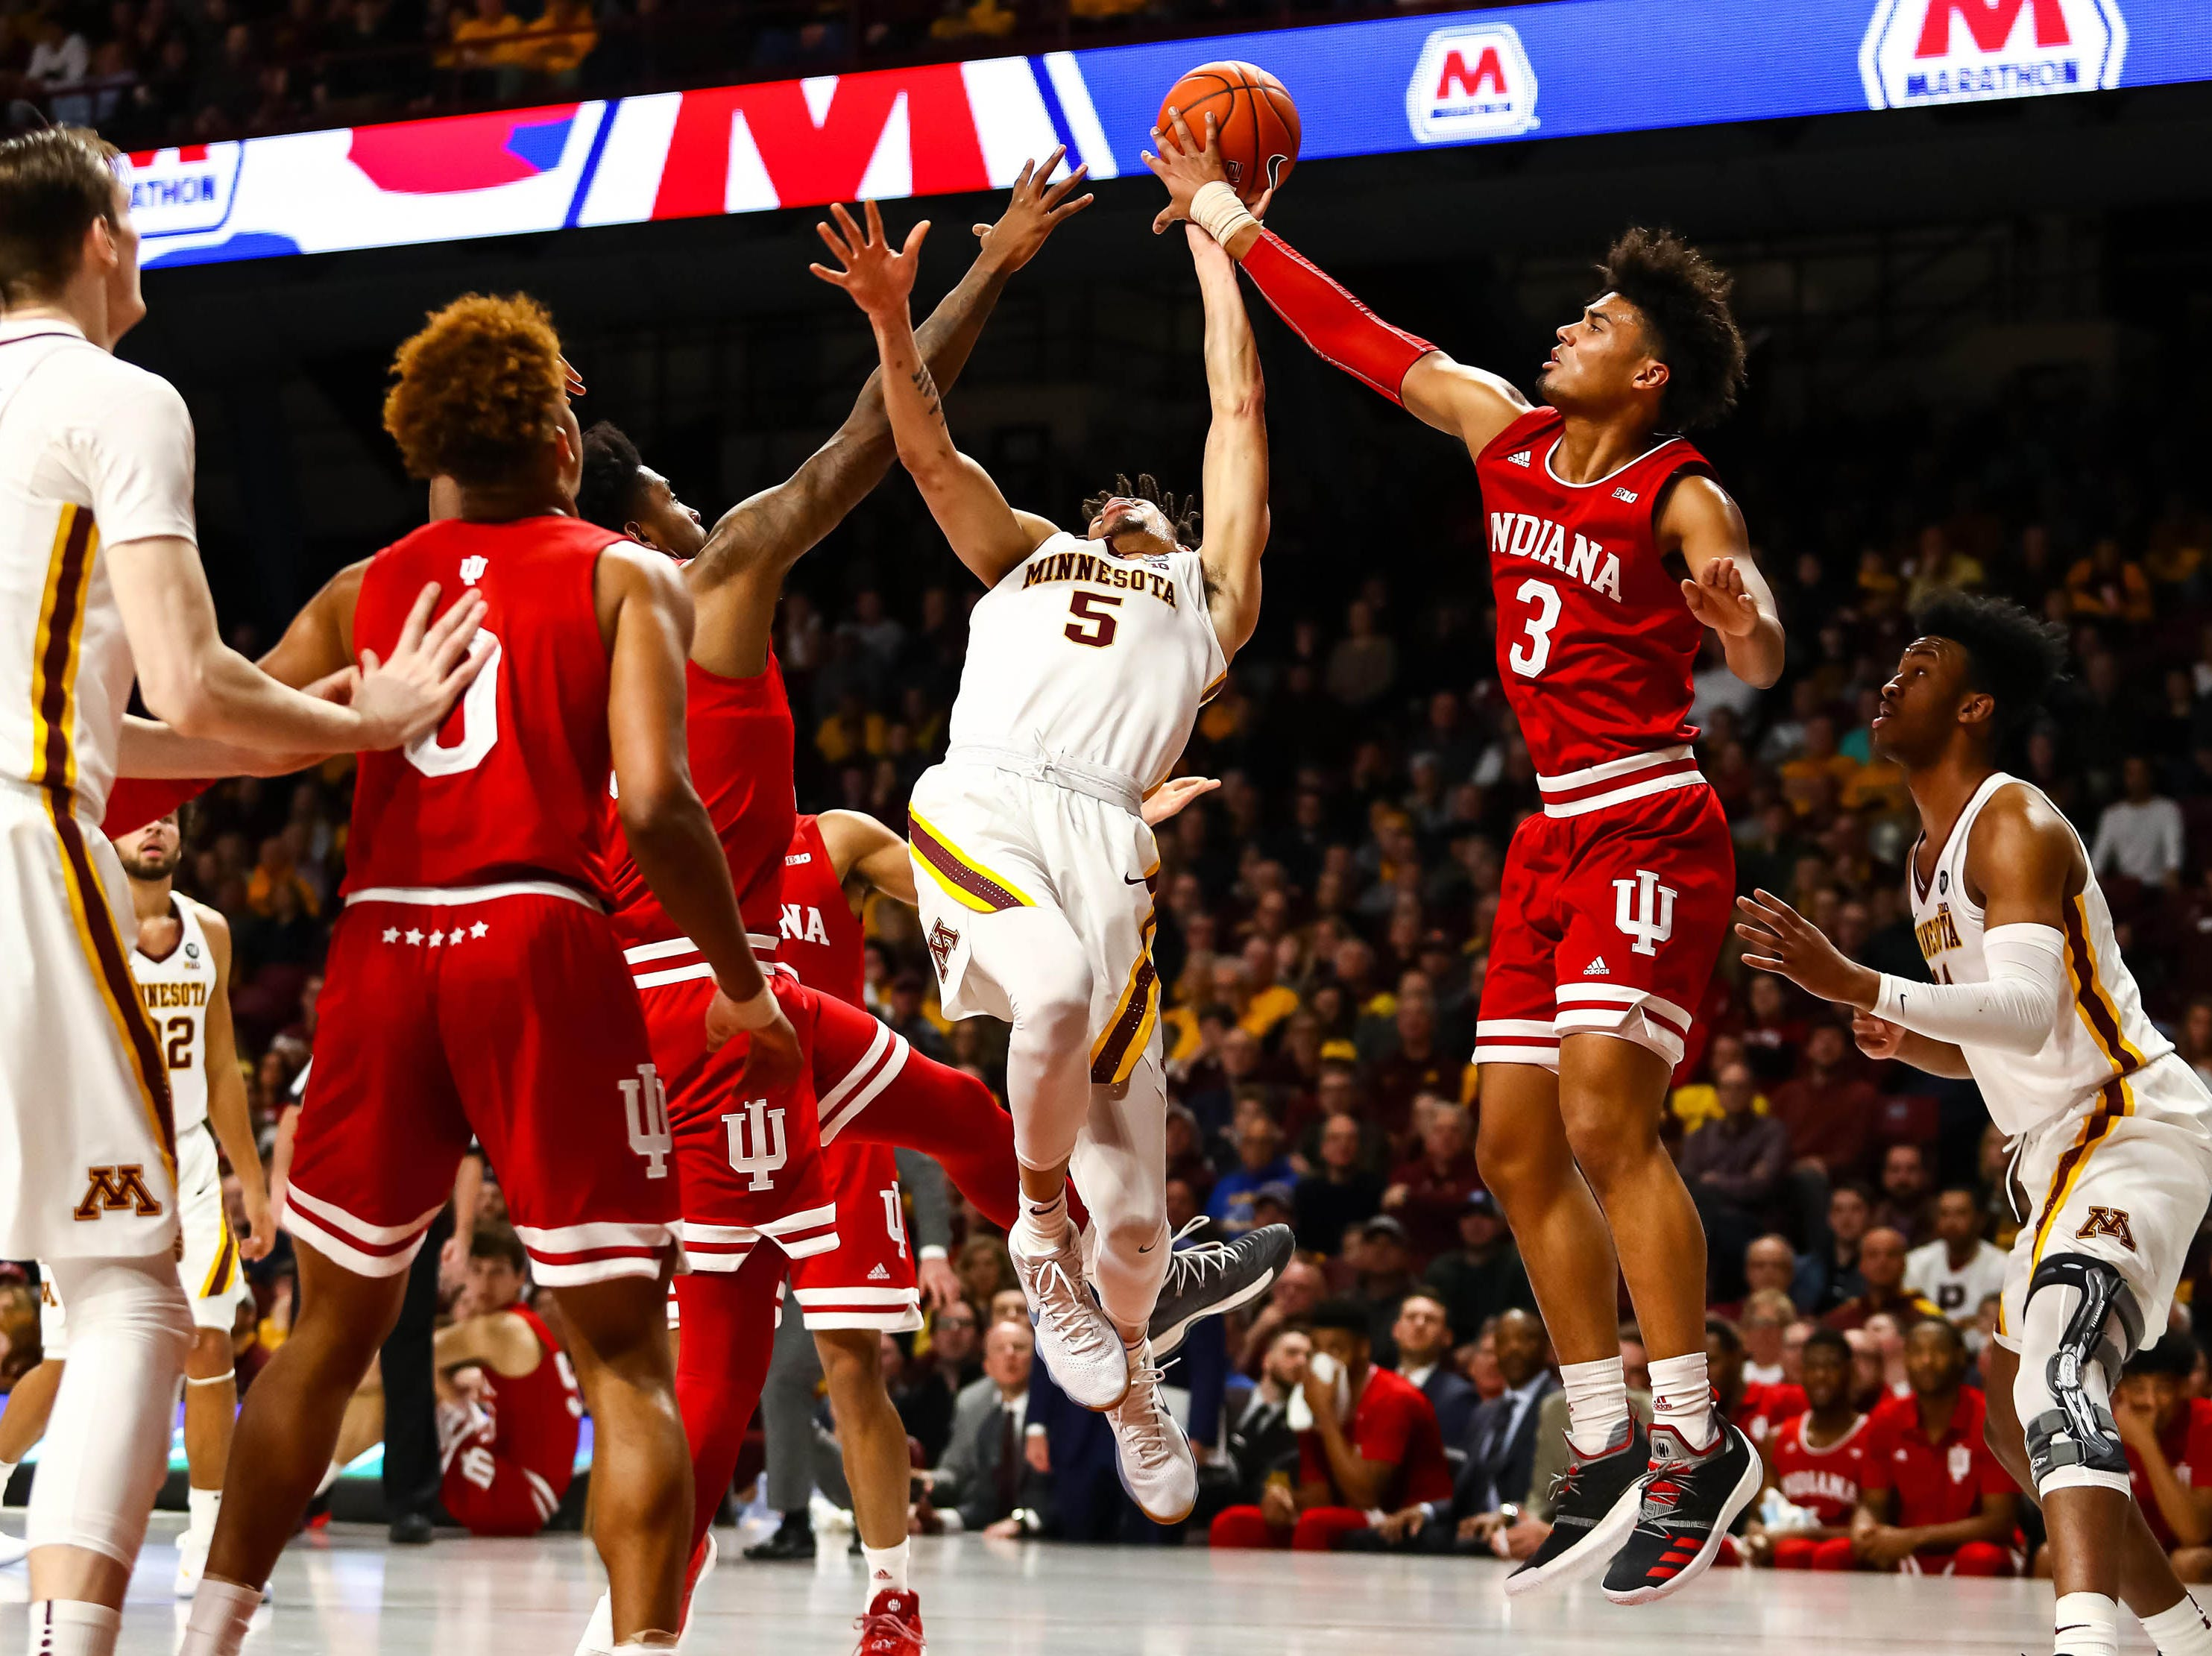 Minnesota Golden Gophers guard Amir Coffey (5) is fouled against the Indiana Hoosiers in the first half at Williams Arena.